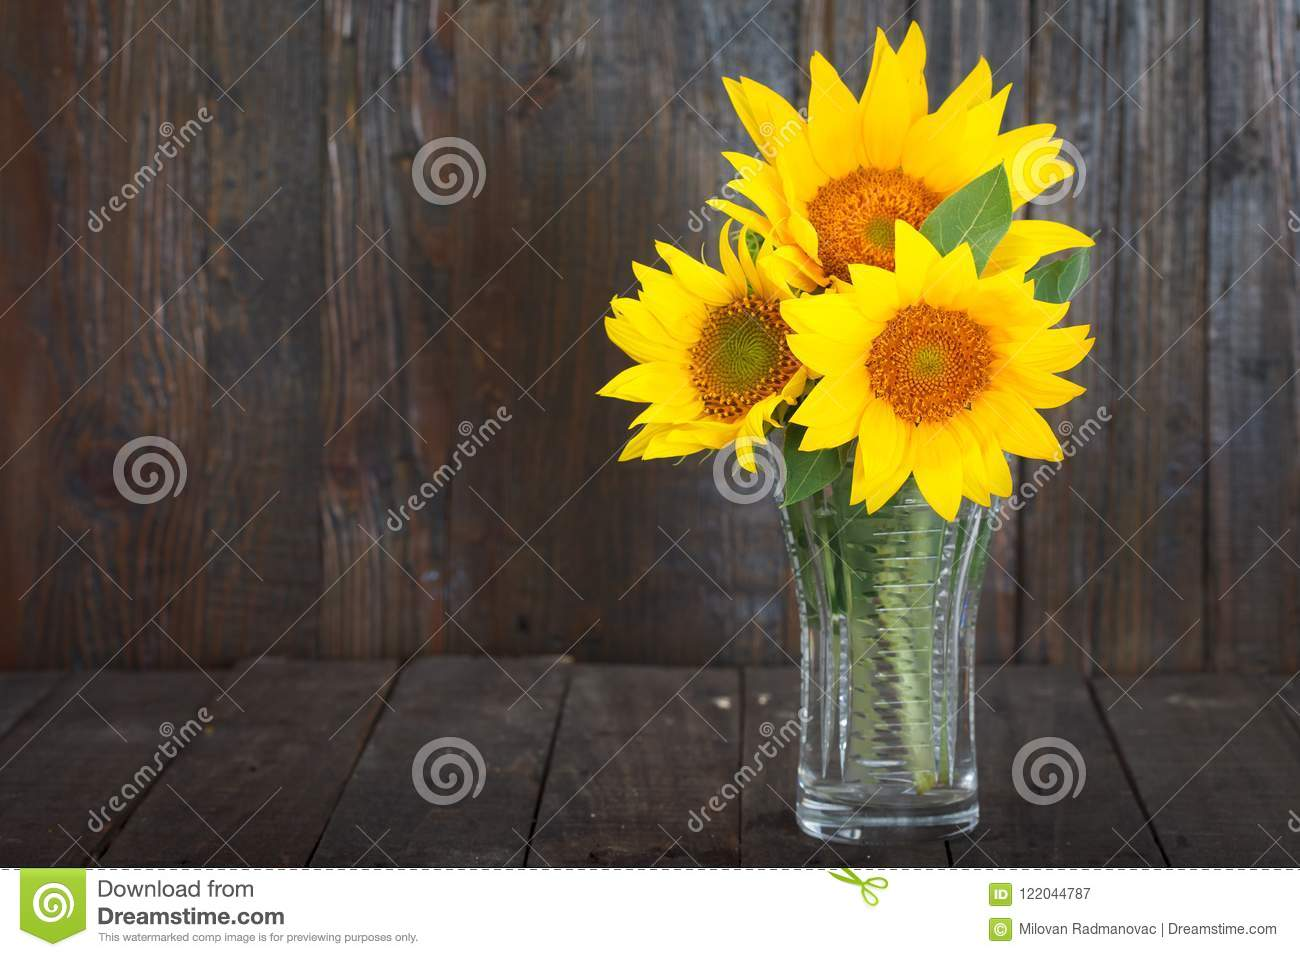 Bouquet Of Sunflowers In Glass Vase Stock Image Image Of Summer Bouquet 122044787